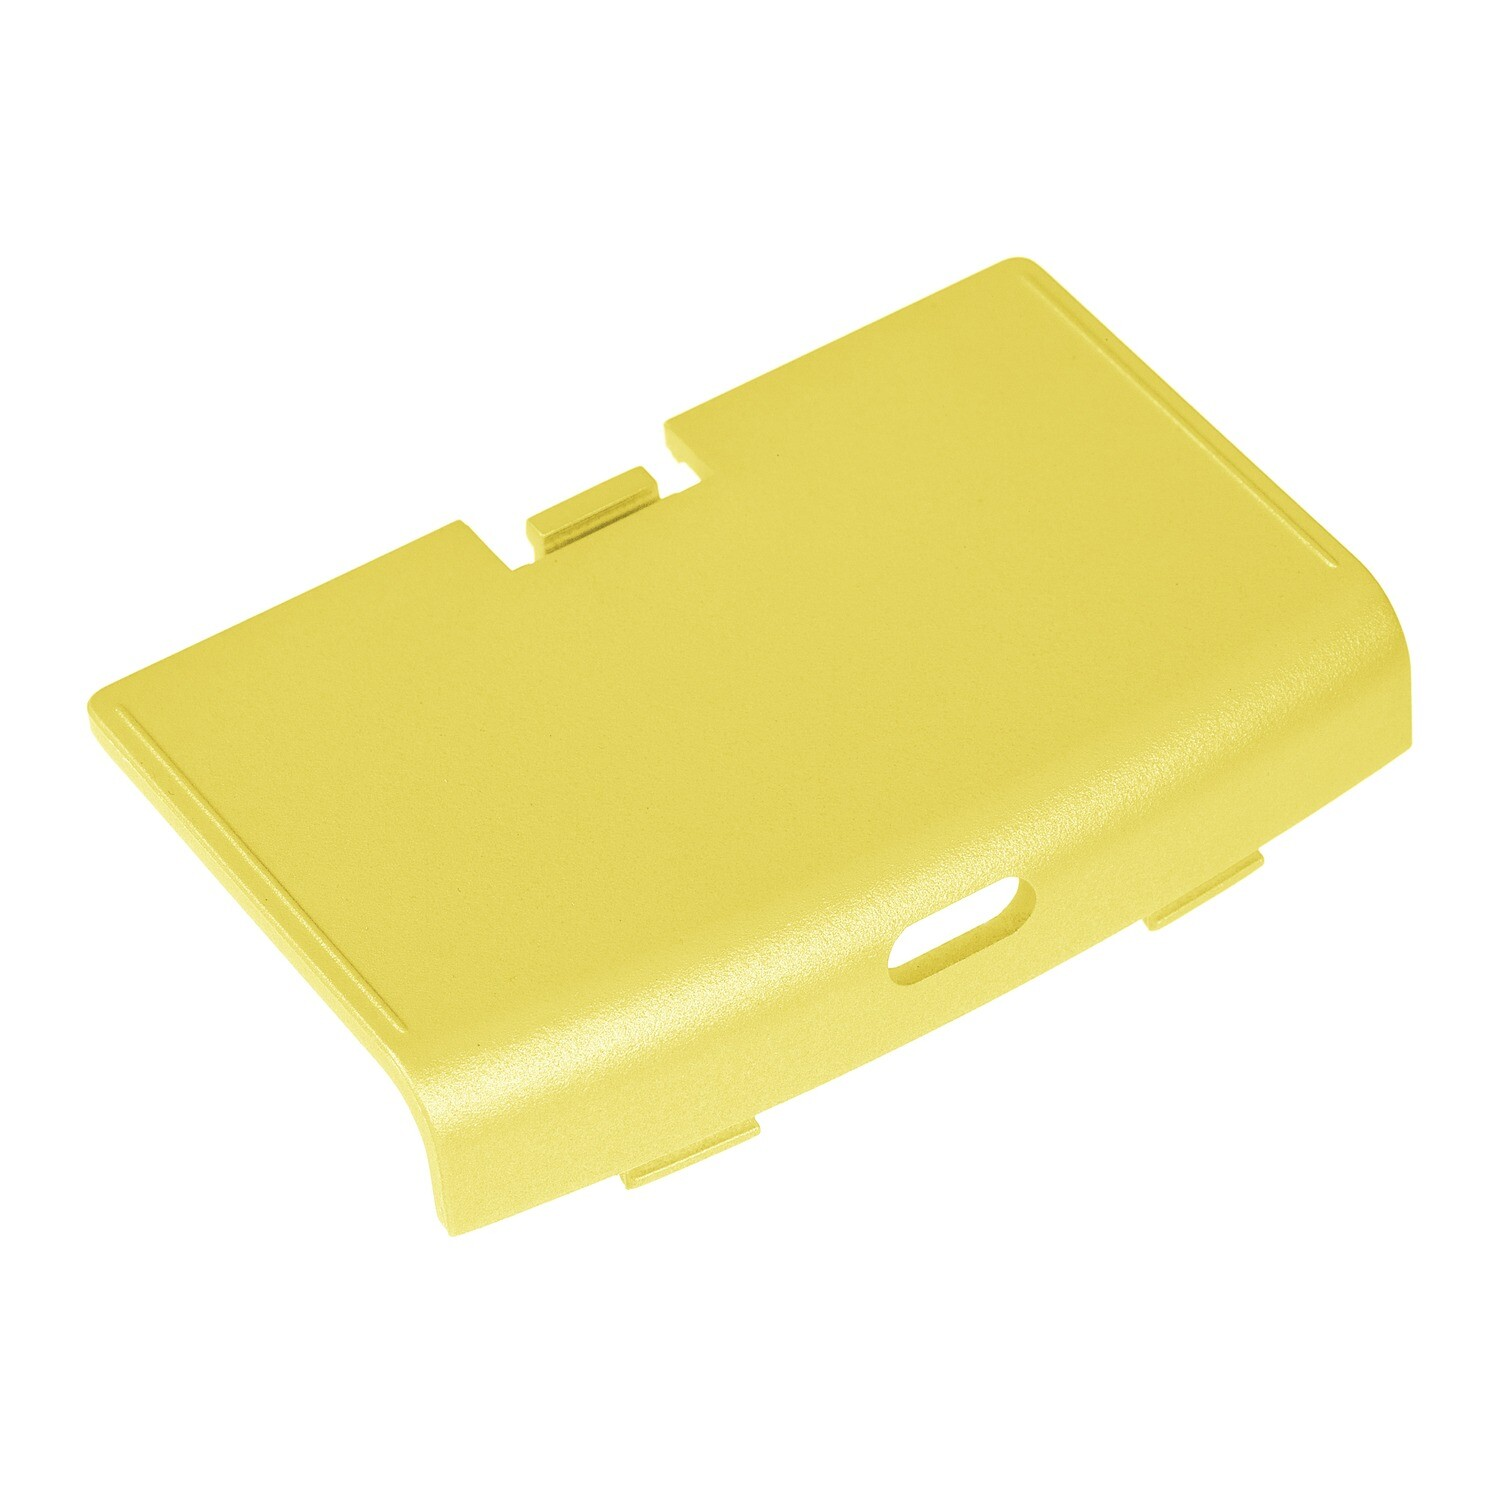 Game Boy Advance USB-C Battery Cover (Pearl Yellow)